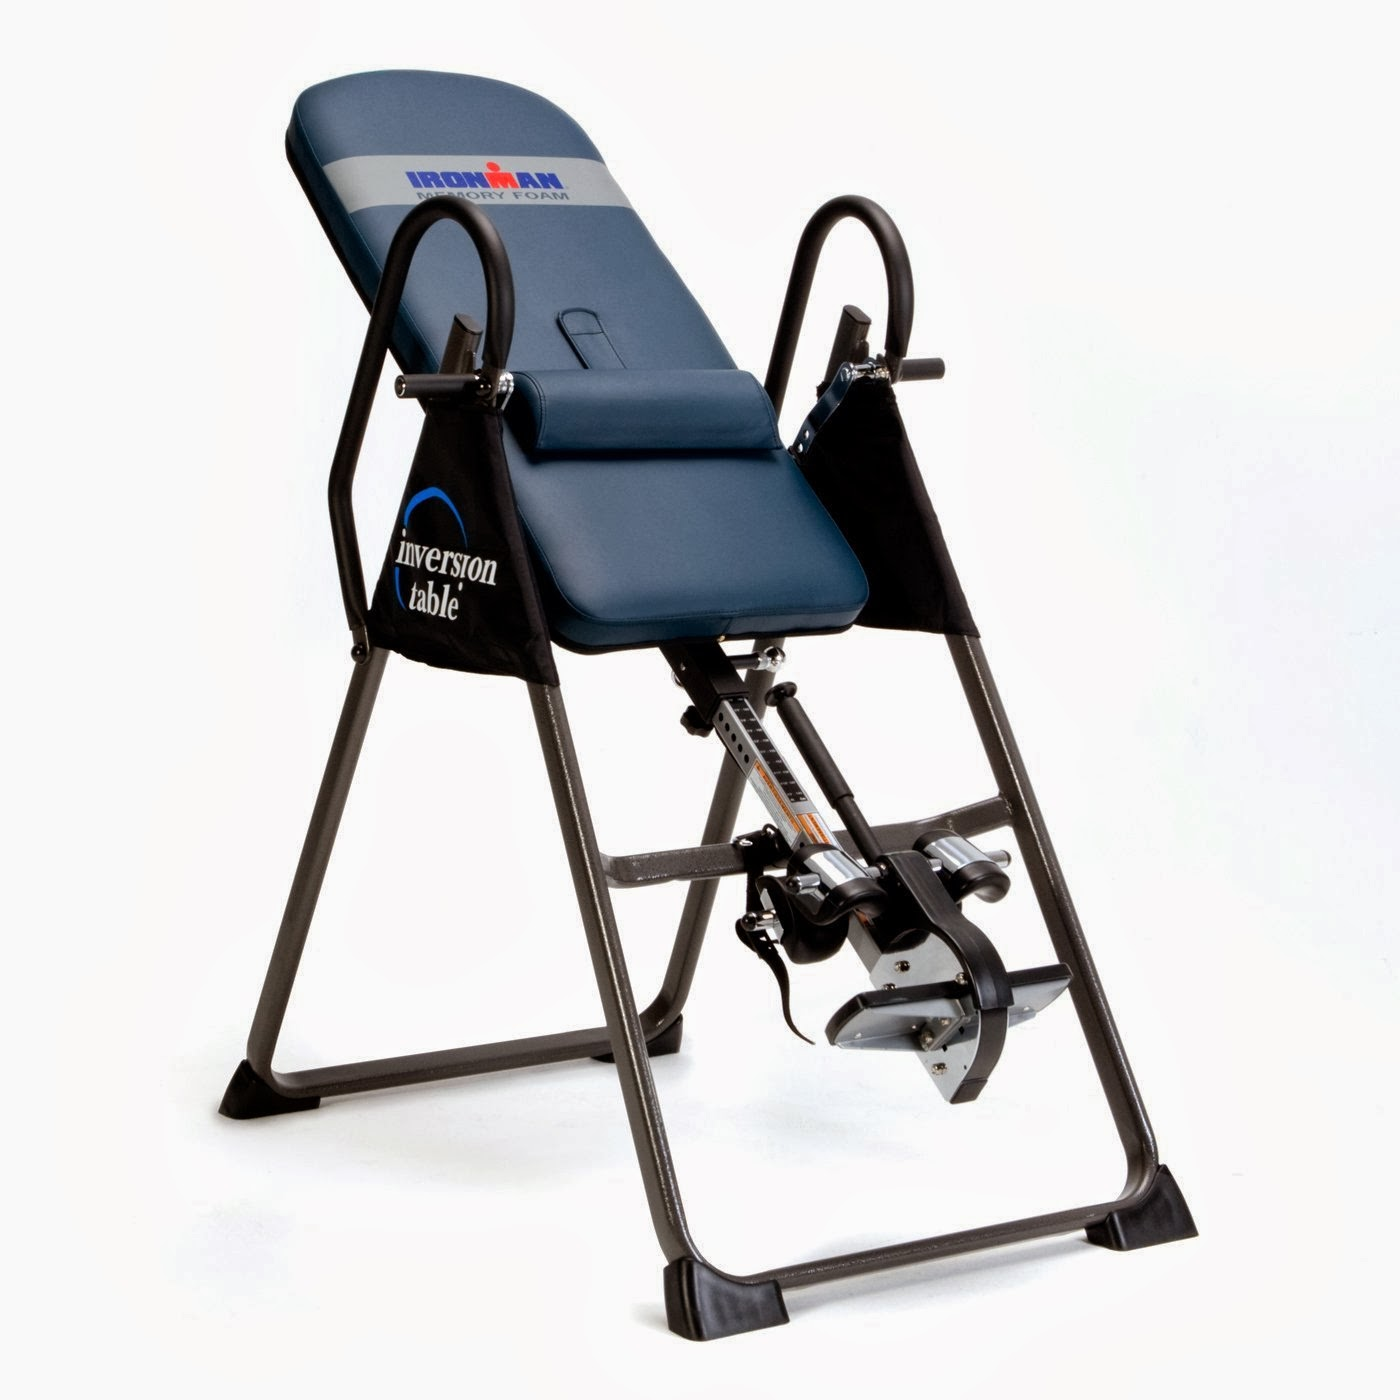 Ironman Gravity 4000 Inversion Table versus Gravity 2000 compared. Helps with back pain relief.